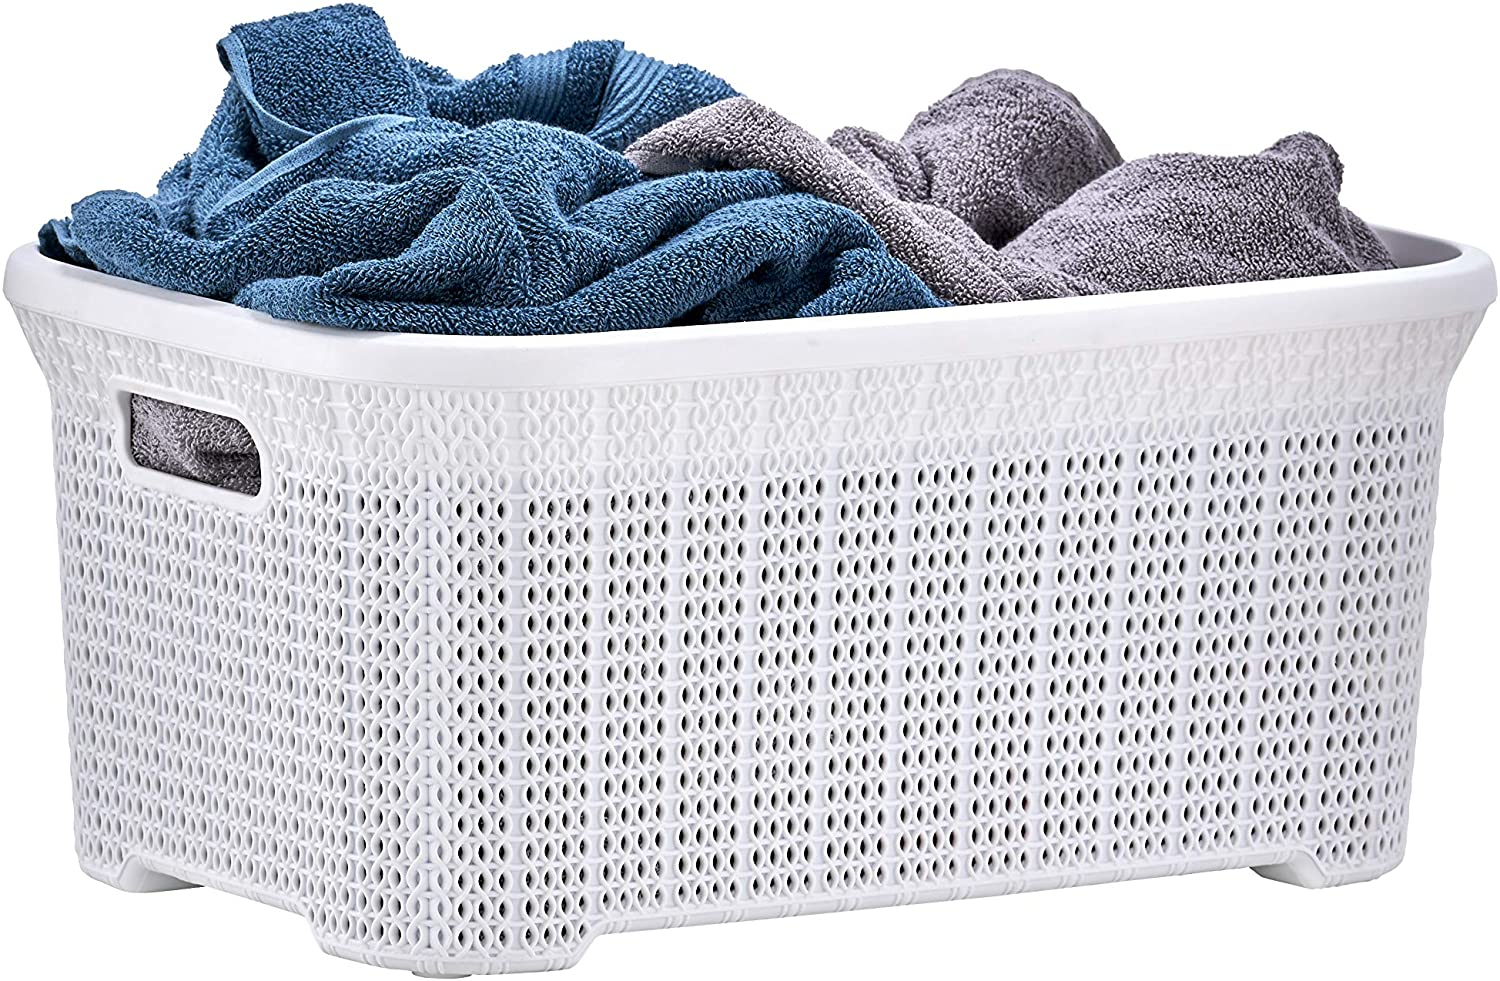 Superio Laundry Basket Knit Style, White 40 Liter Laundry Bin for Dirty Cloths - 1.15 Bushel